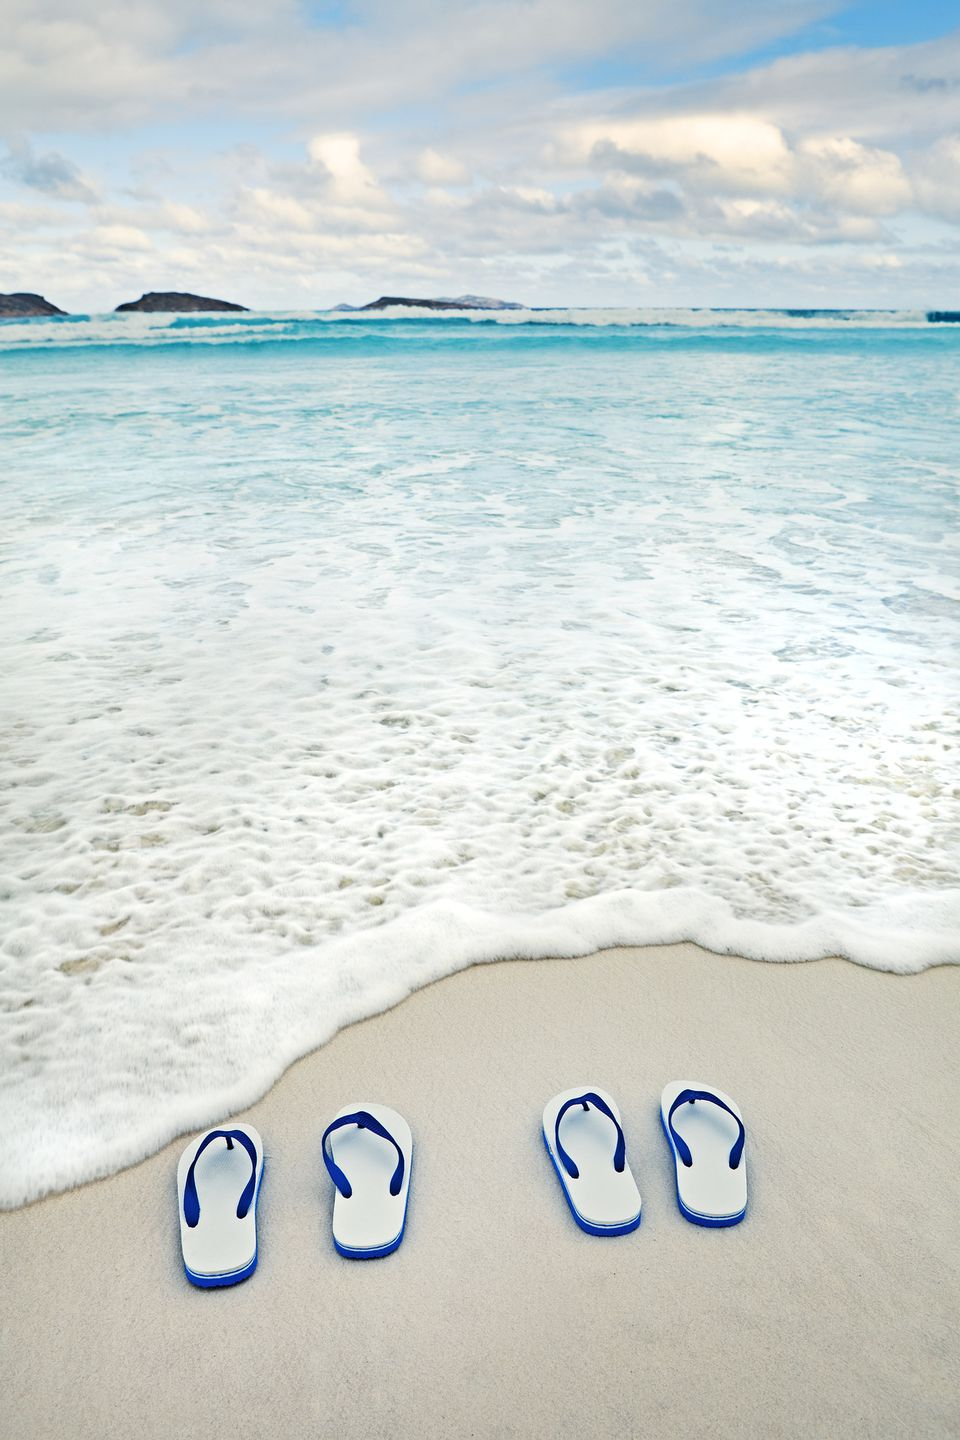 flip flops on beach at Cape Le Grand National Park, Australia